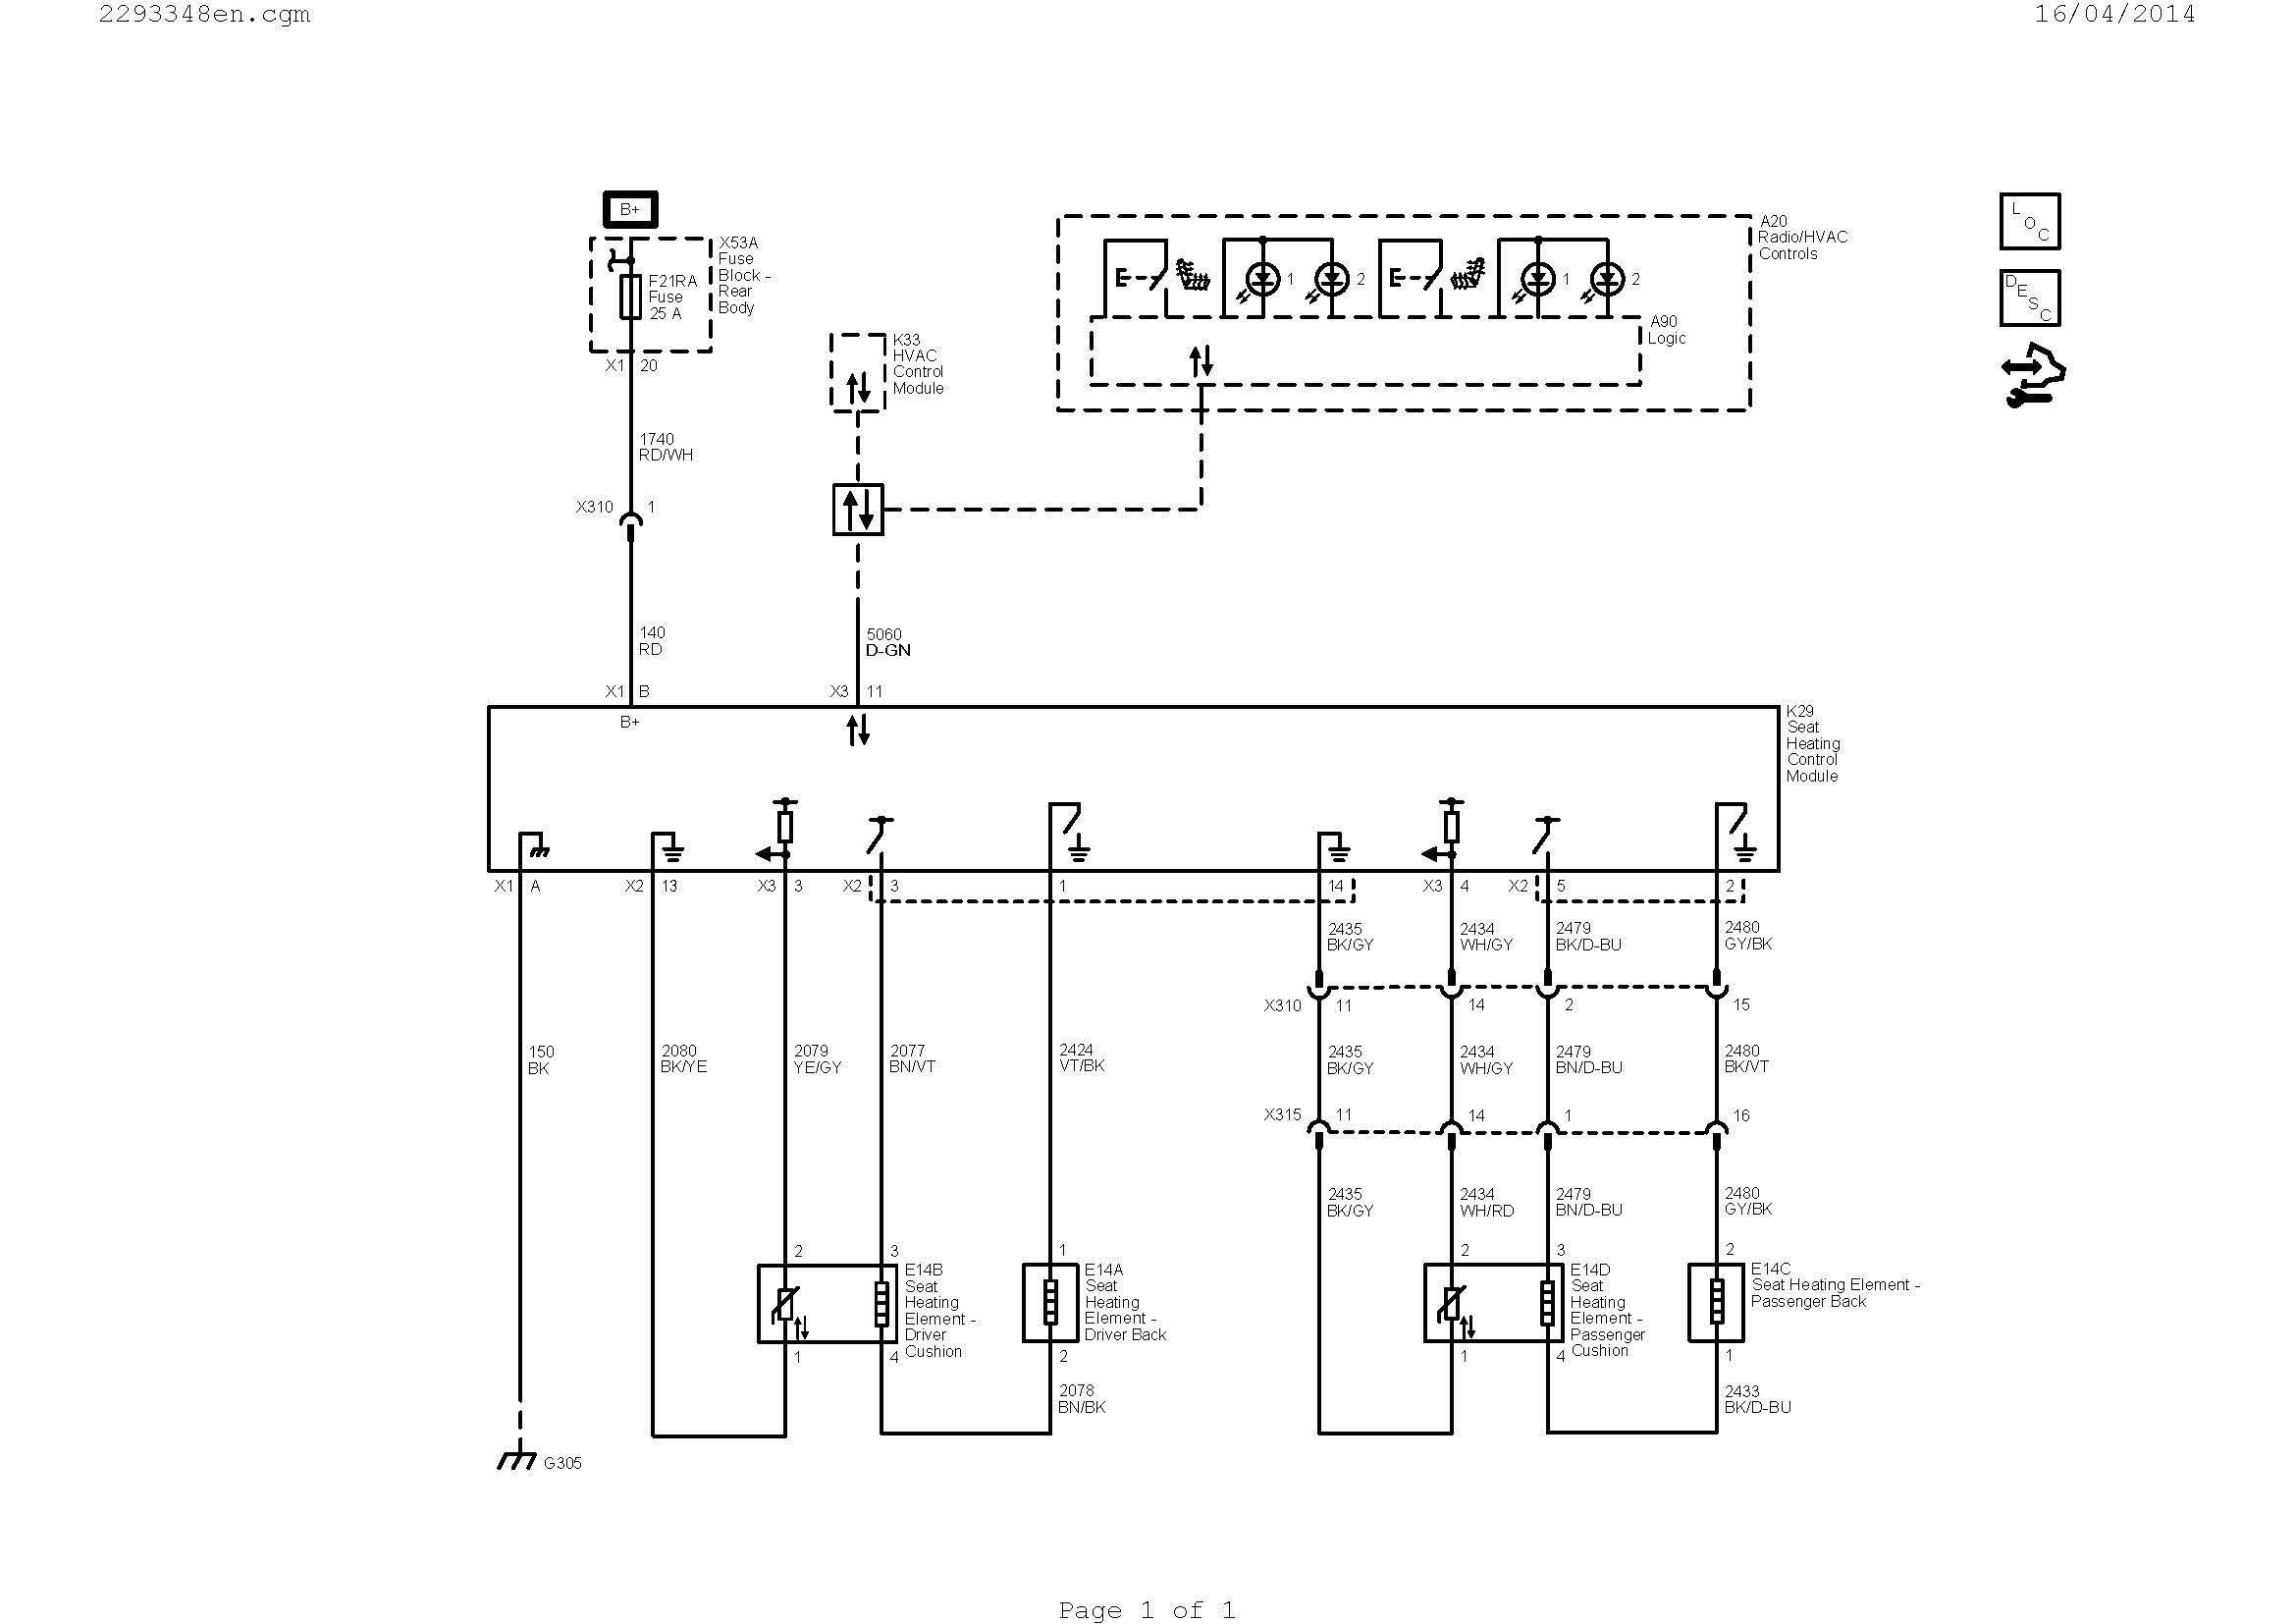 home thermostat wiring diagram Download-home thermostat wiring diagram Download Wiring A Ac Thermostat Diagram New Wiring Diagram Ac Valid DOWNLOAD Wiring Diagram 5-l